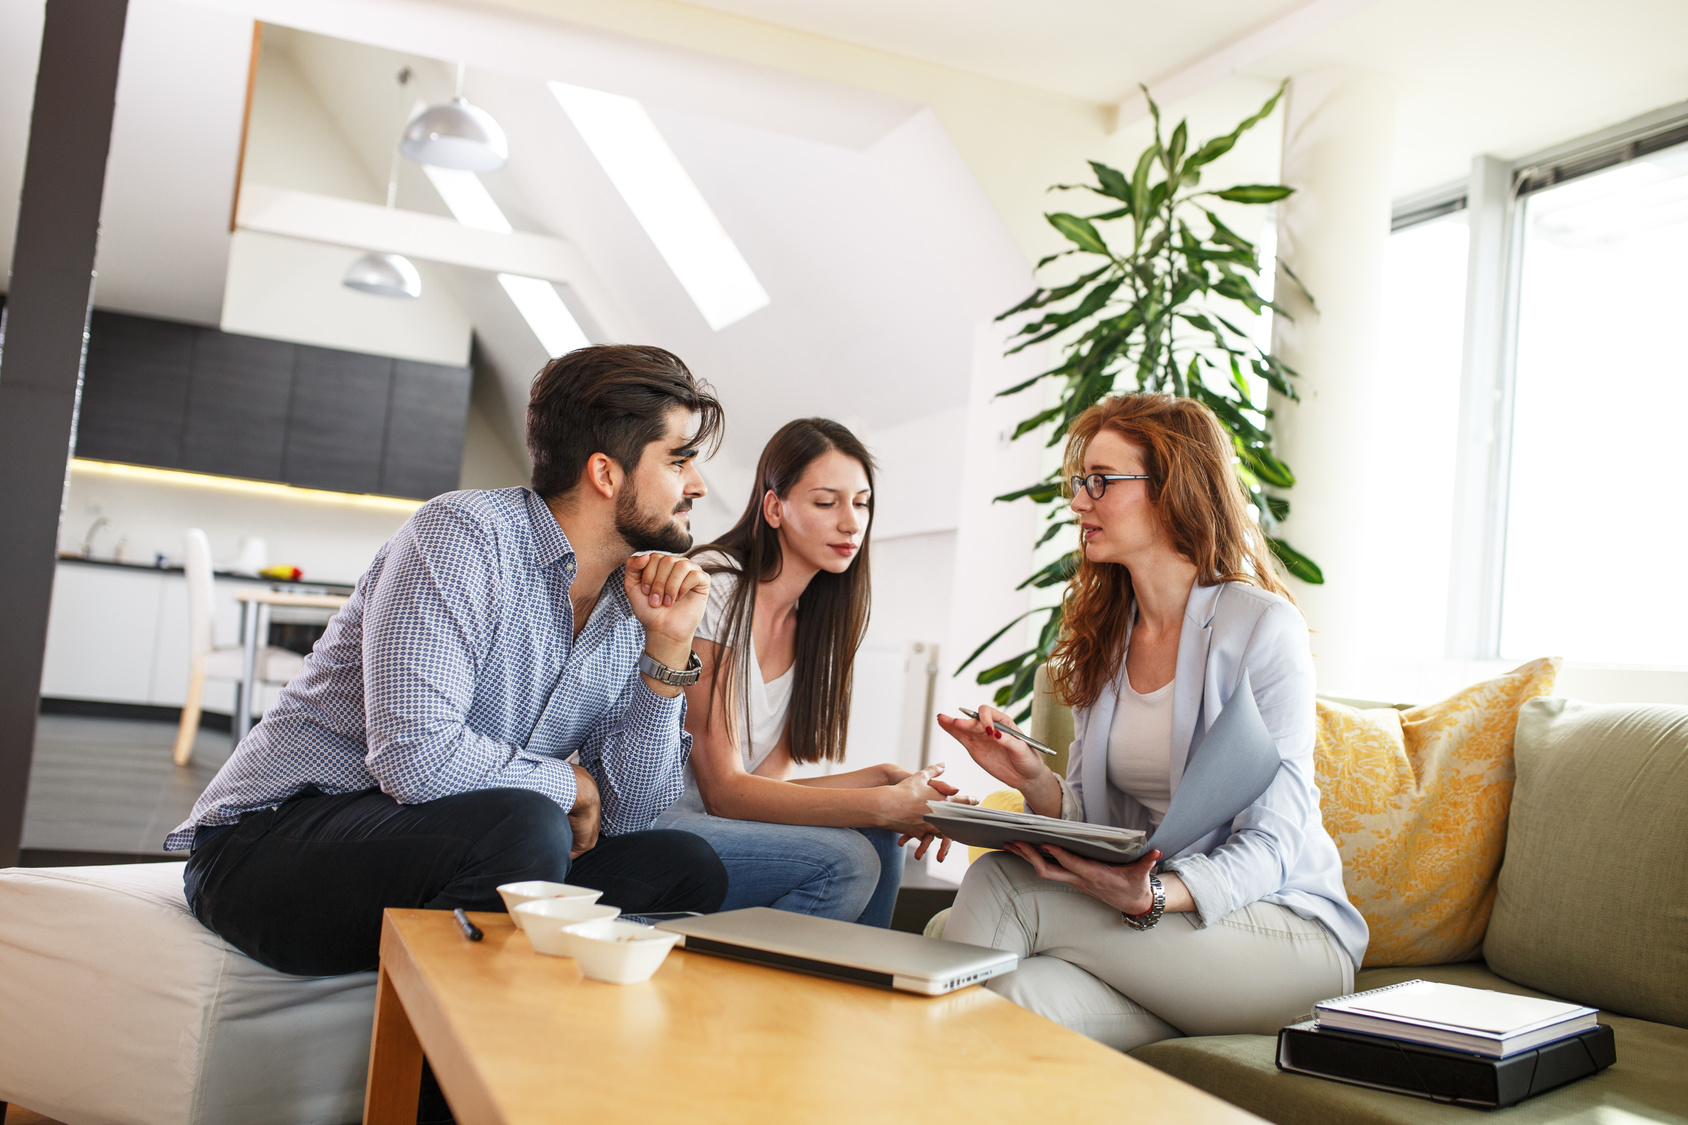 Insruance-Agent-Meeting-with-Couple-in-Home